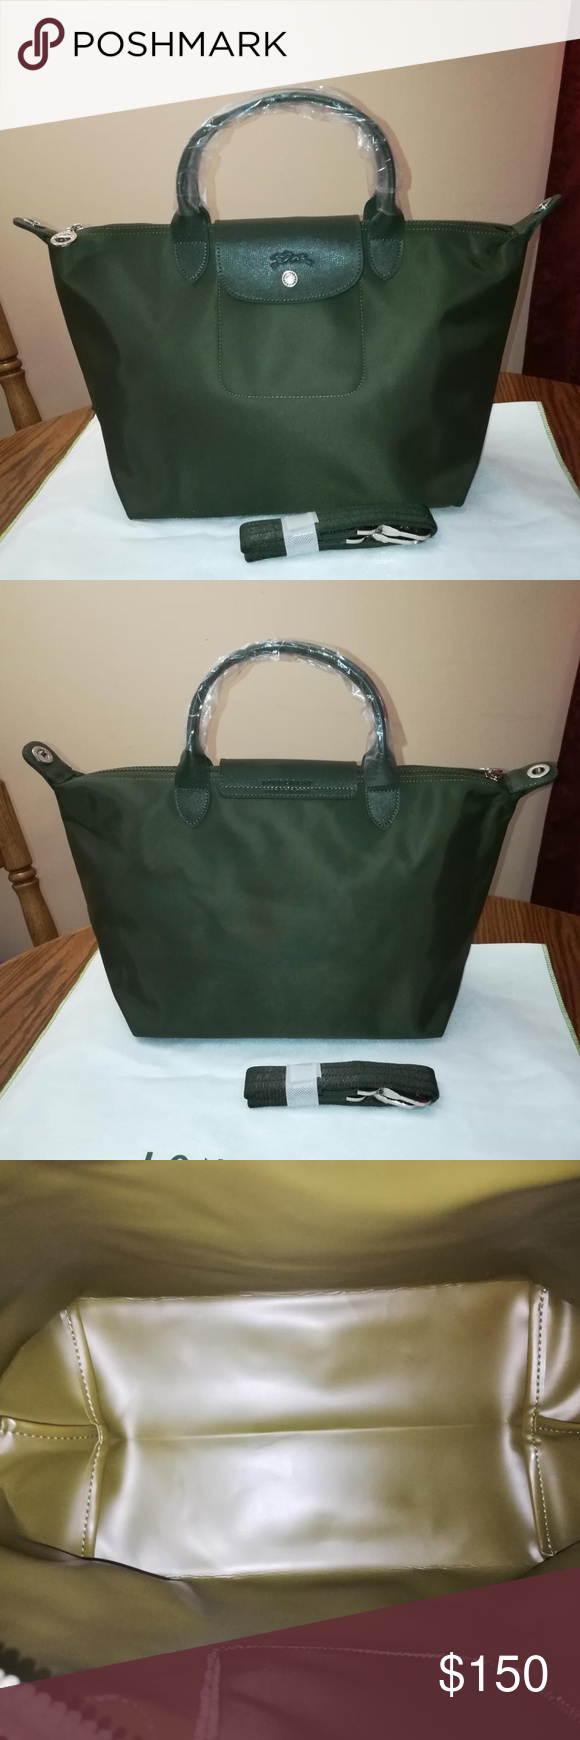 Longchamp Le Pliage Neo Medium Loden Green New In 2018 My Posh Tote Khaki Short Handle With Straps Made France Silver Tone Hardware Comes Dust